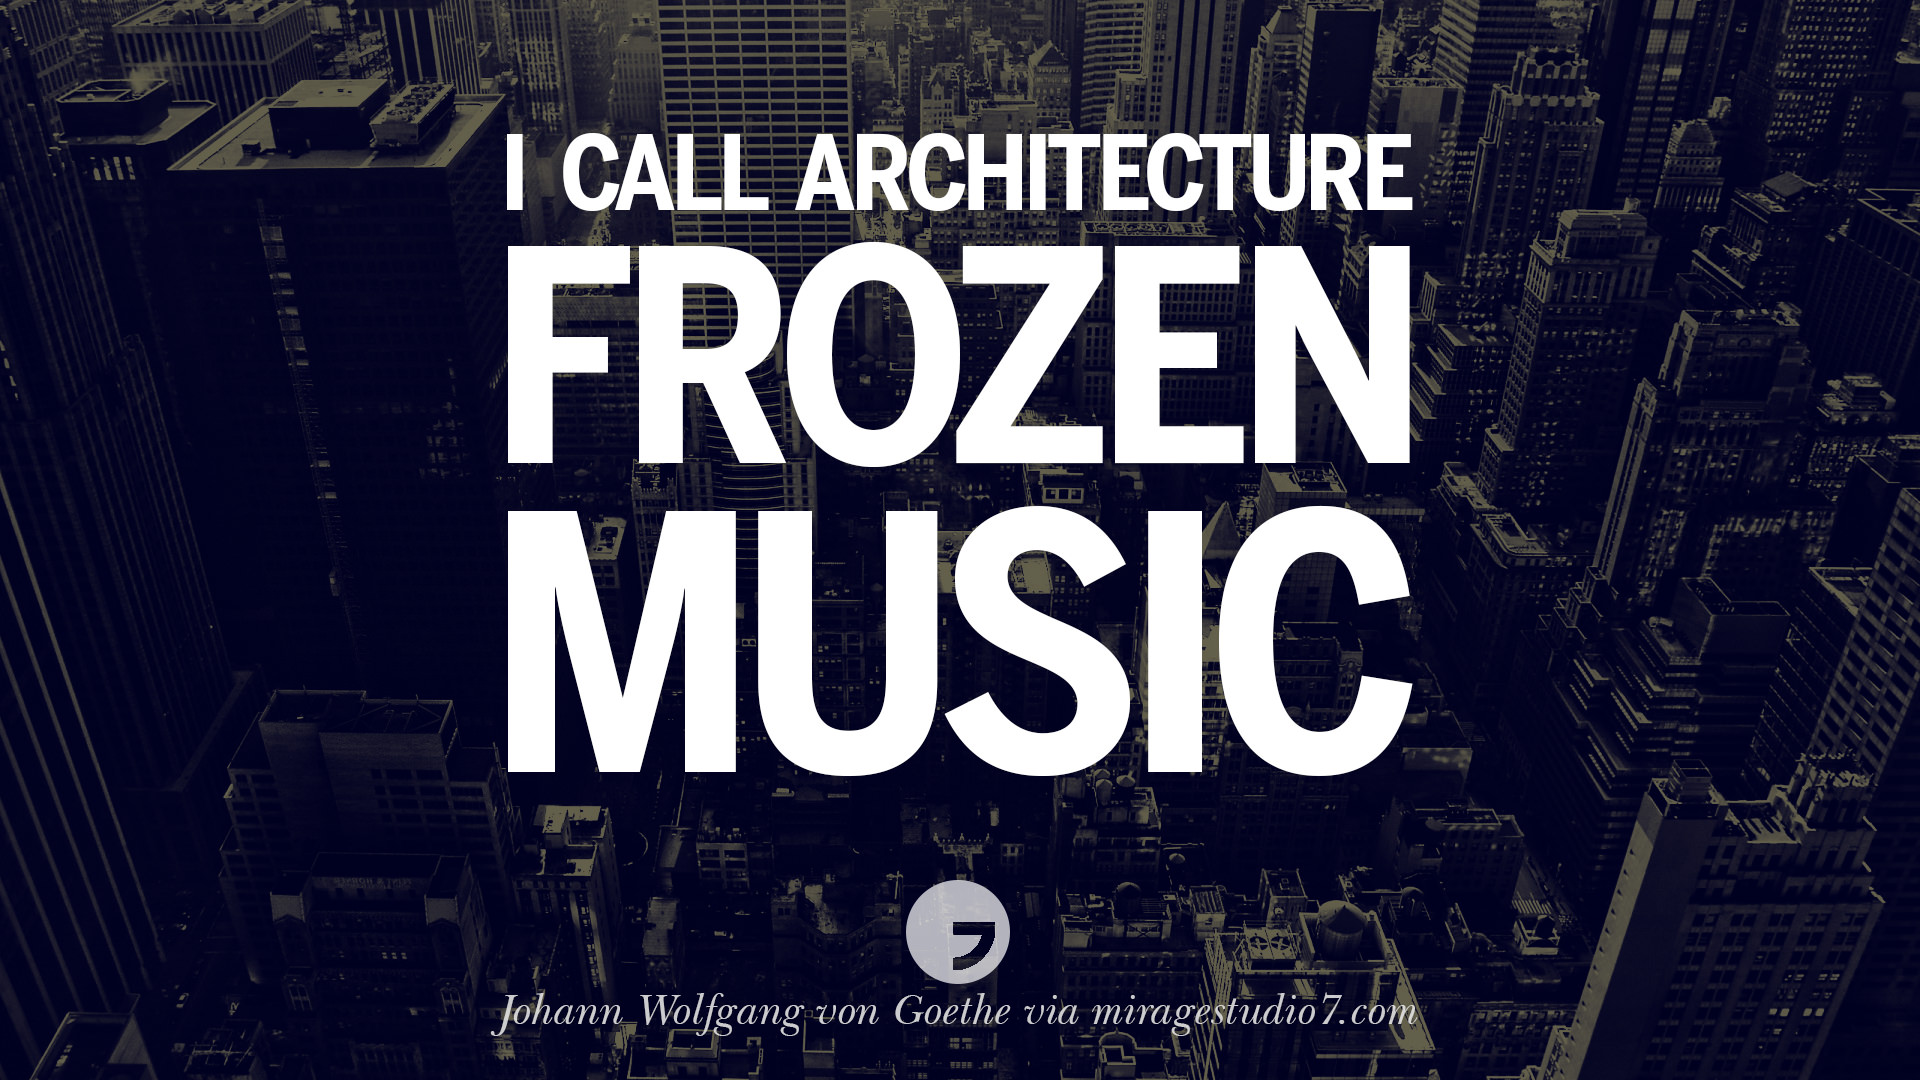 I Call Architecture Frozen Music Johann Wolfgang Von Goethe Architecture  Quotes By Famous Architects28 Inspirational Architecture